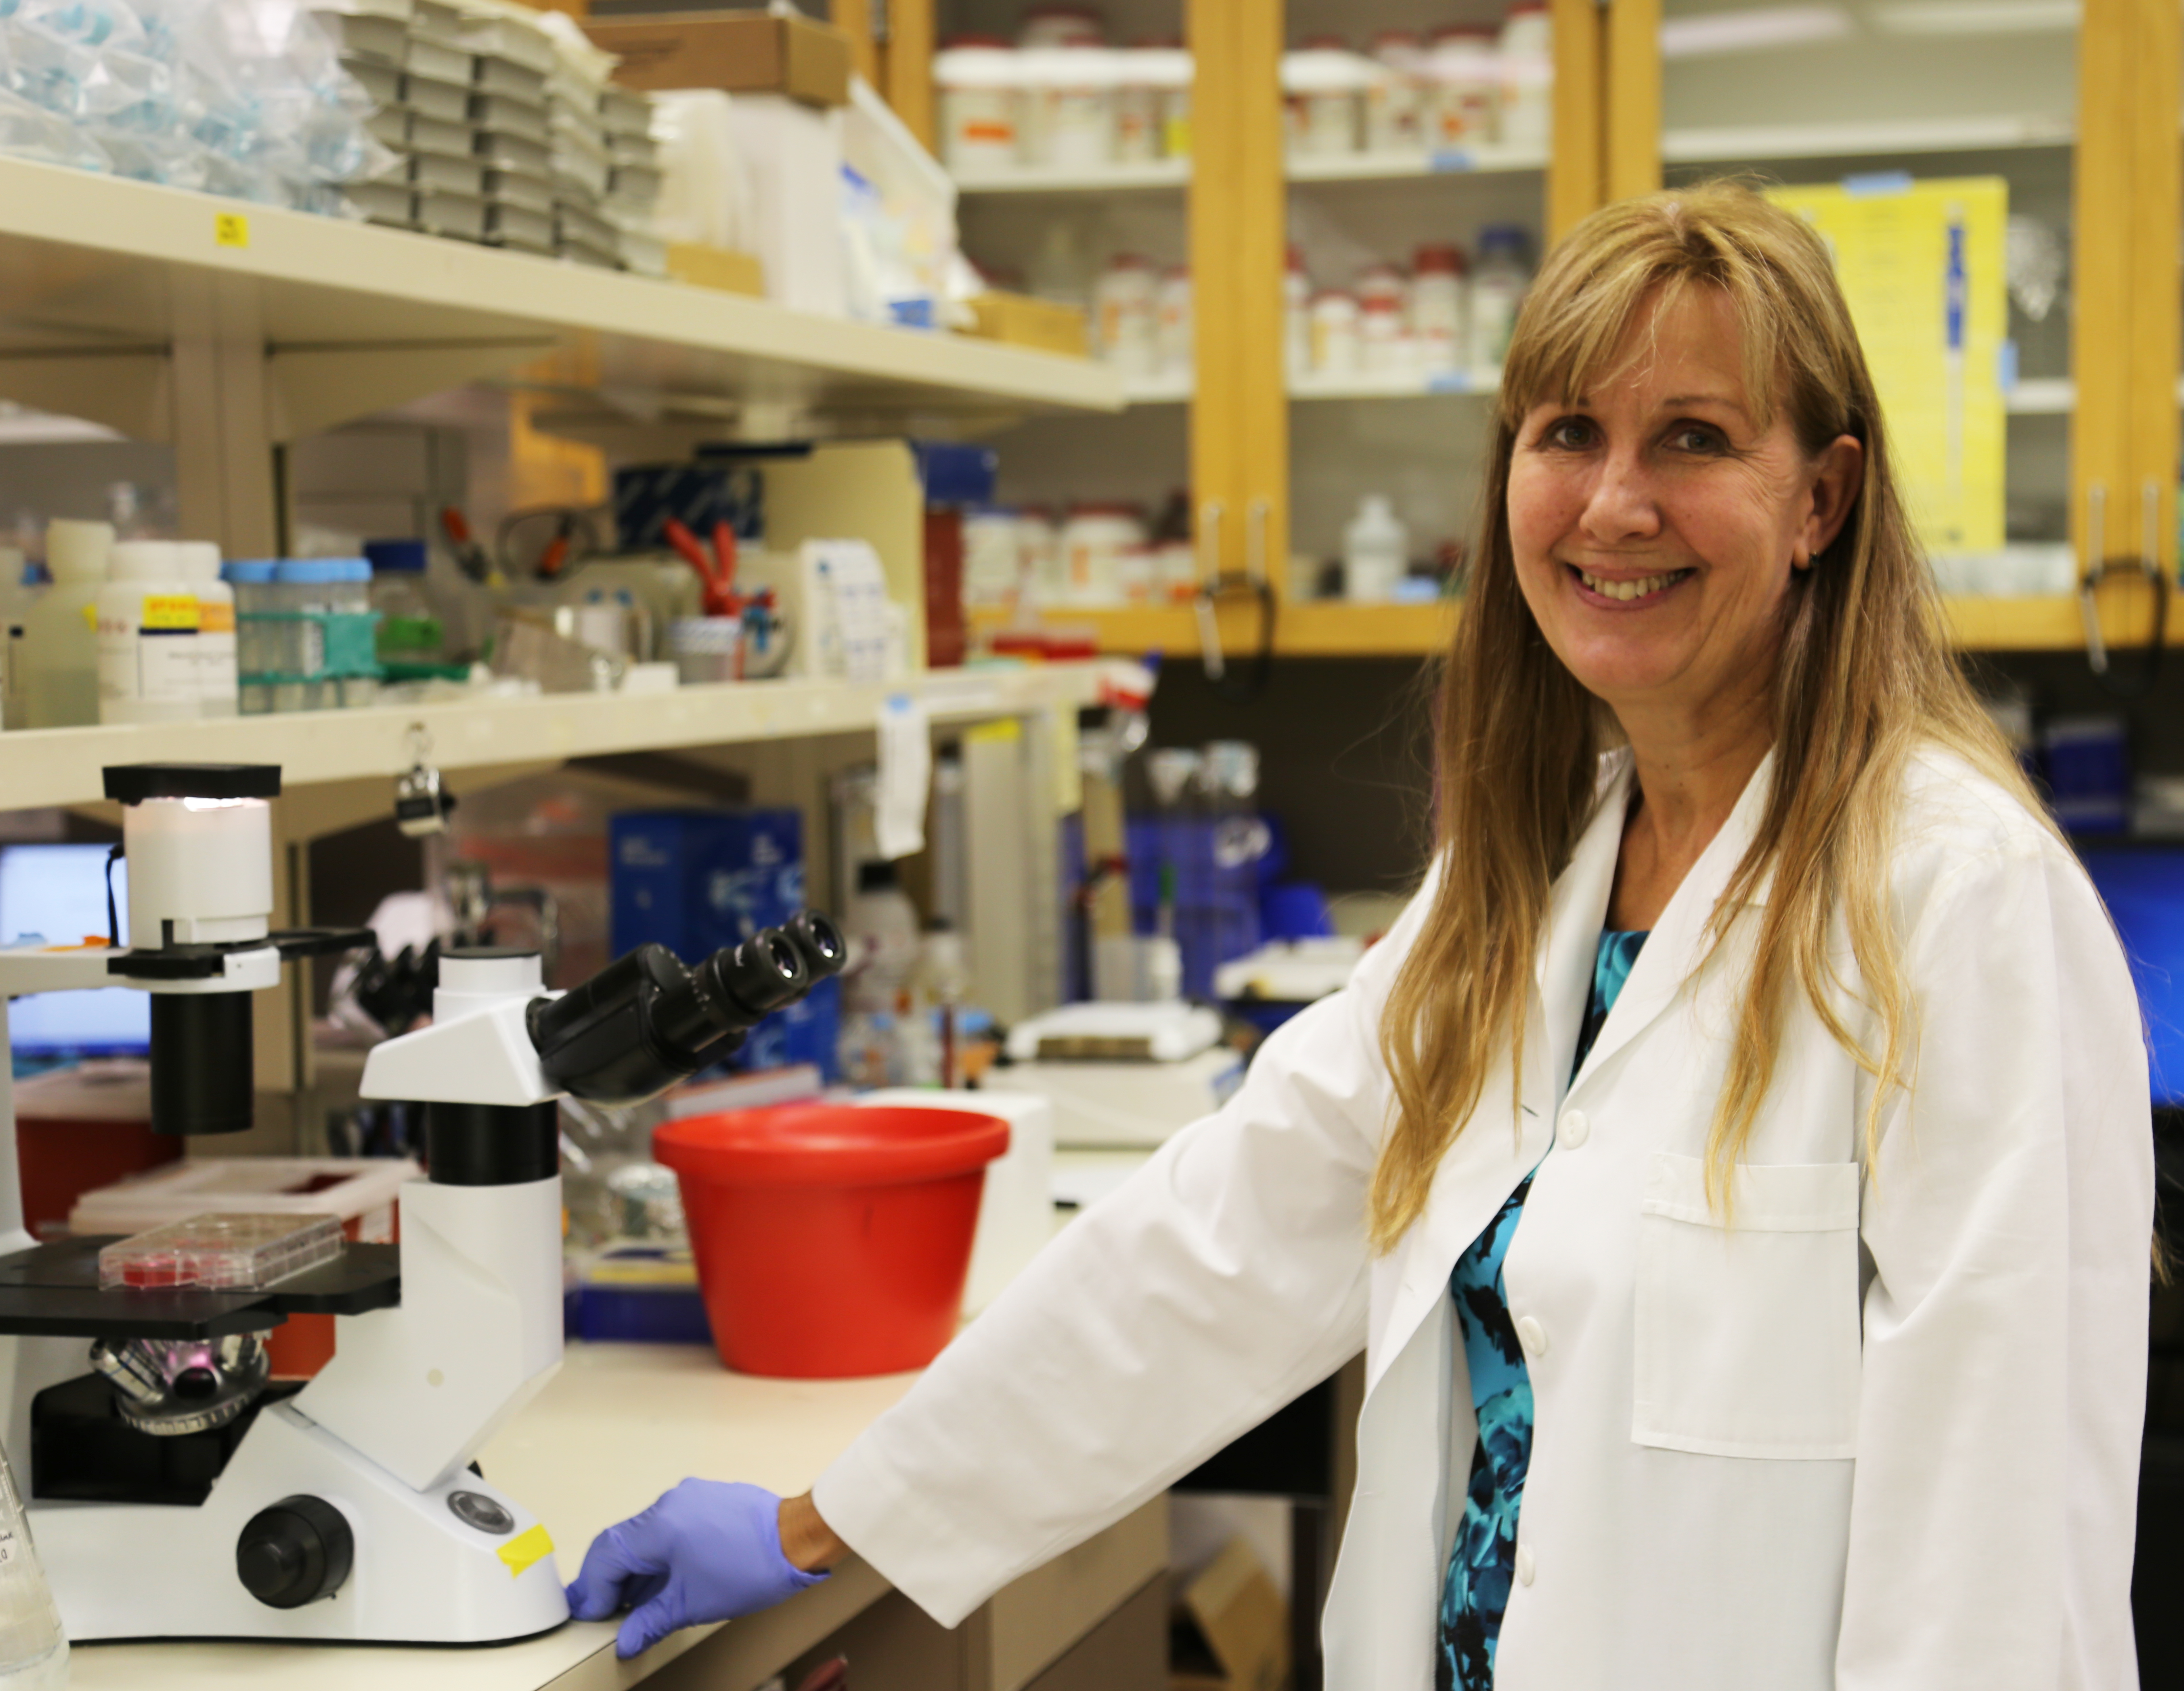 Loma Linda University School of Medicine professor Mary Kearns-Jonker wins prestigious International Space Station research award